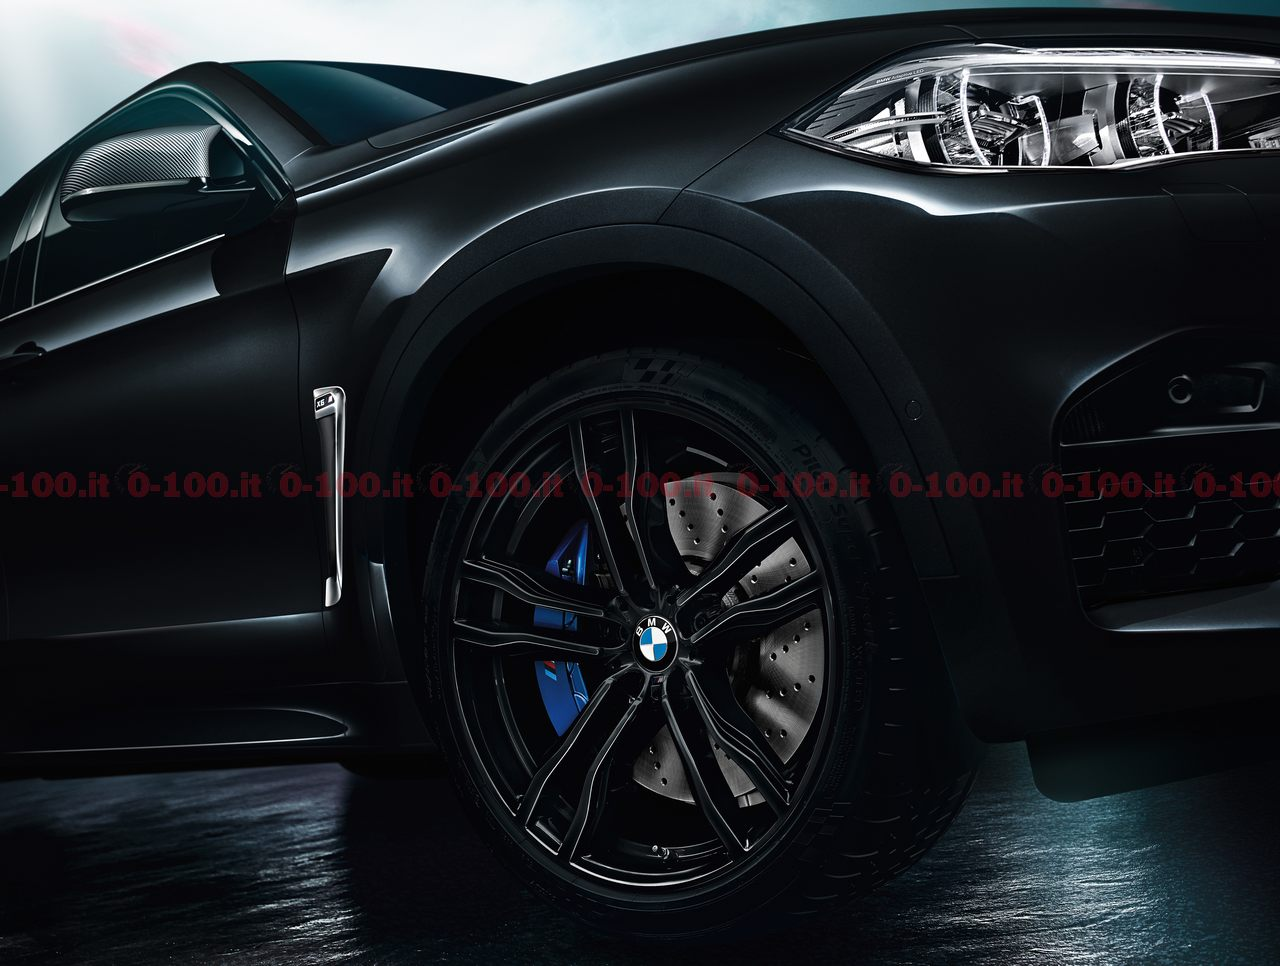 BMW_X5M-X6M-black-fire-edition_0-100_6